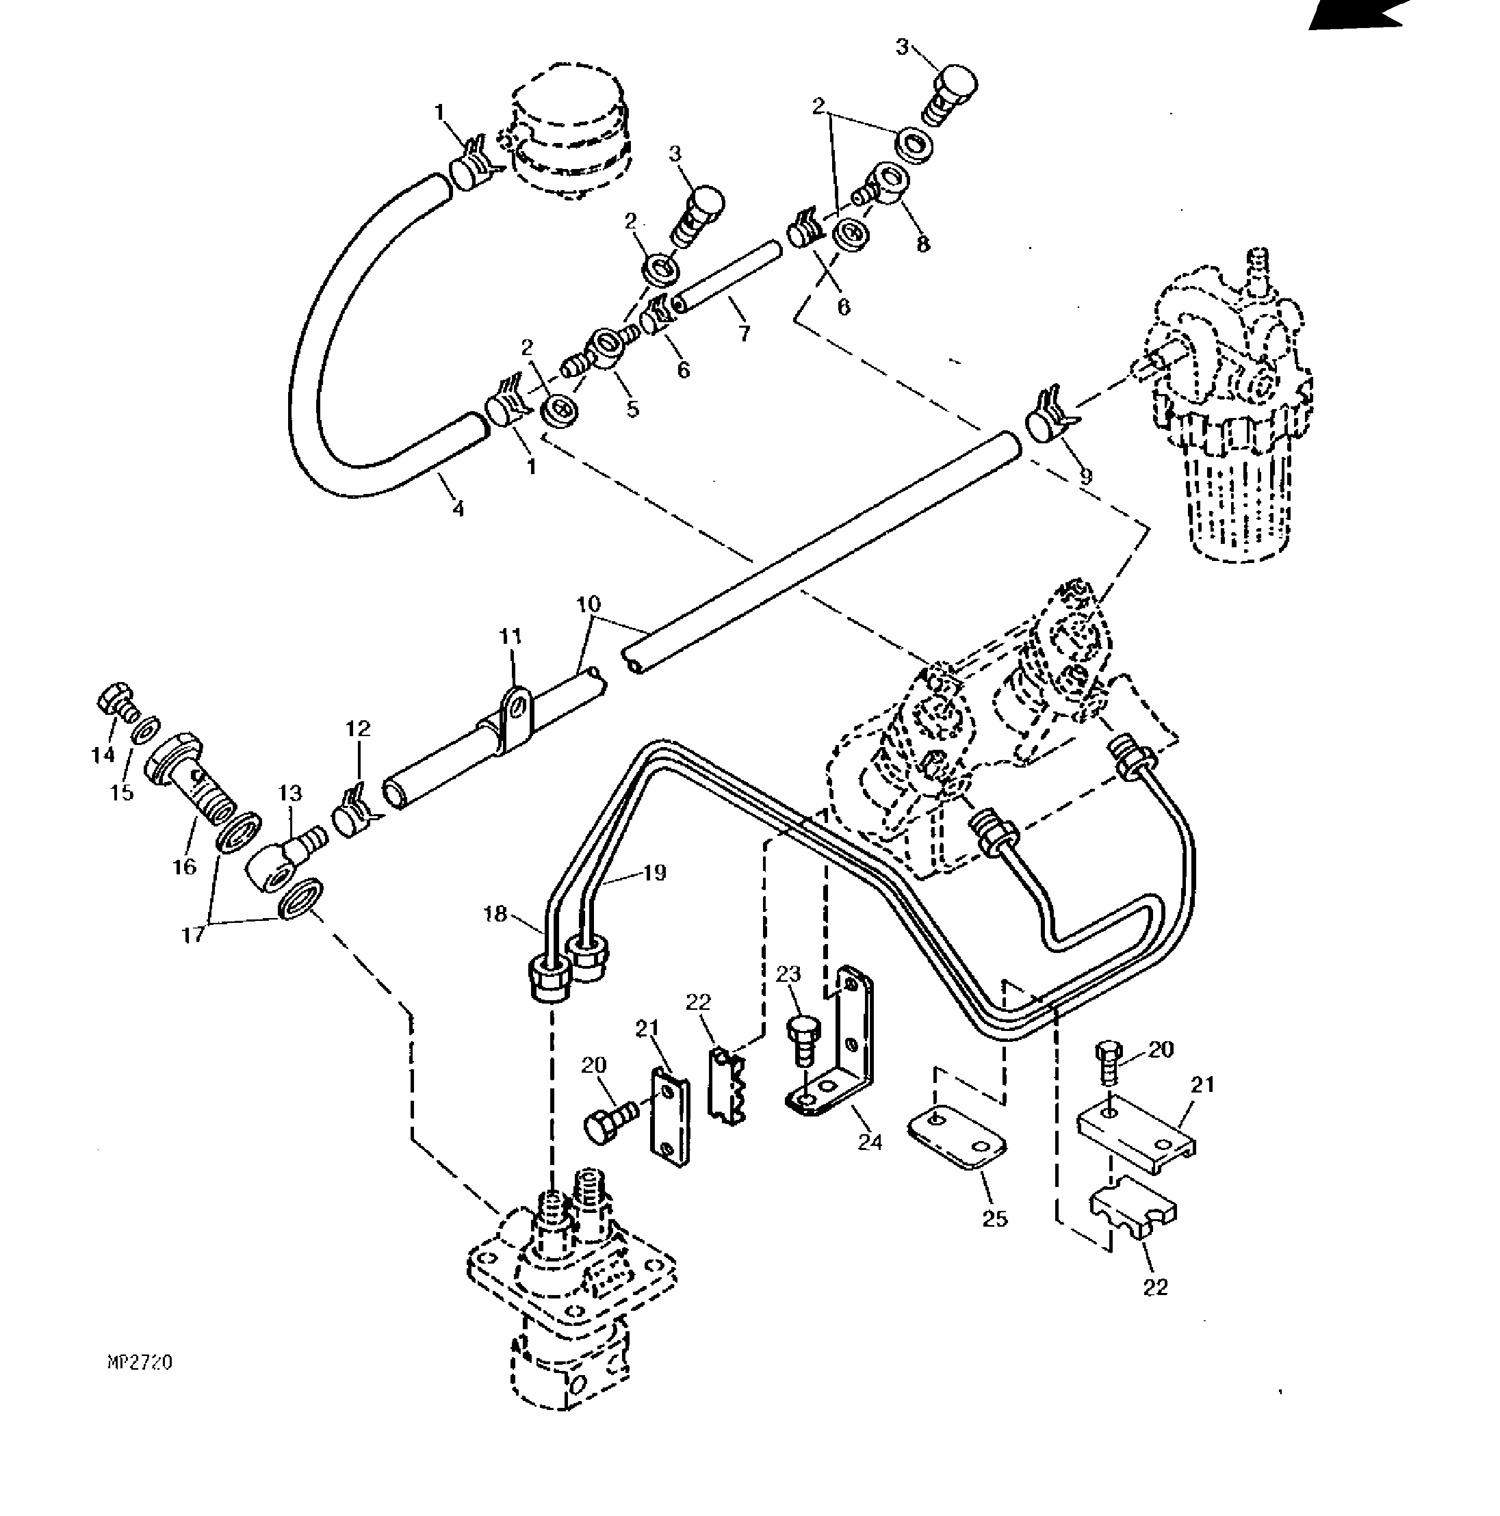 Paccar Engine Part Diagram